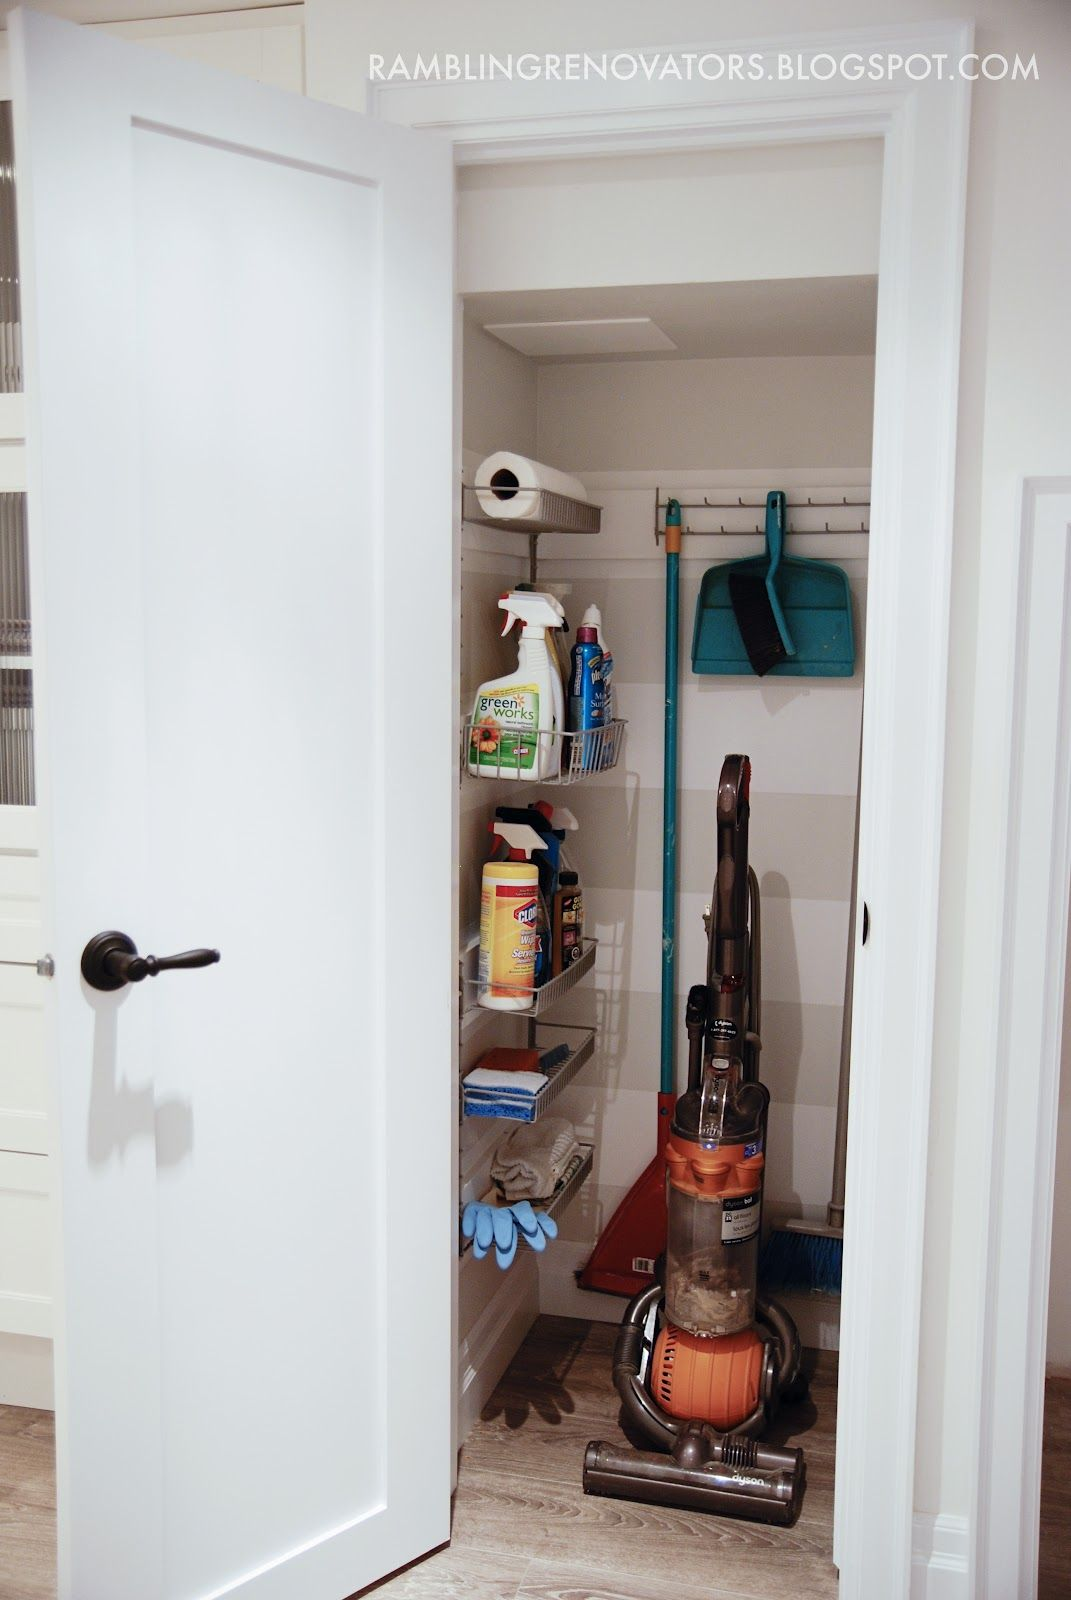 Broom Closet Cleaning Supplies On Wall Rack